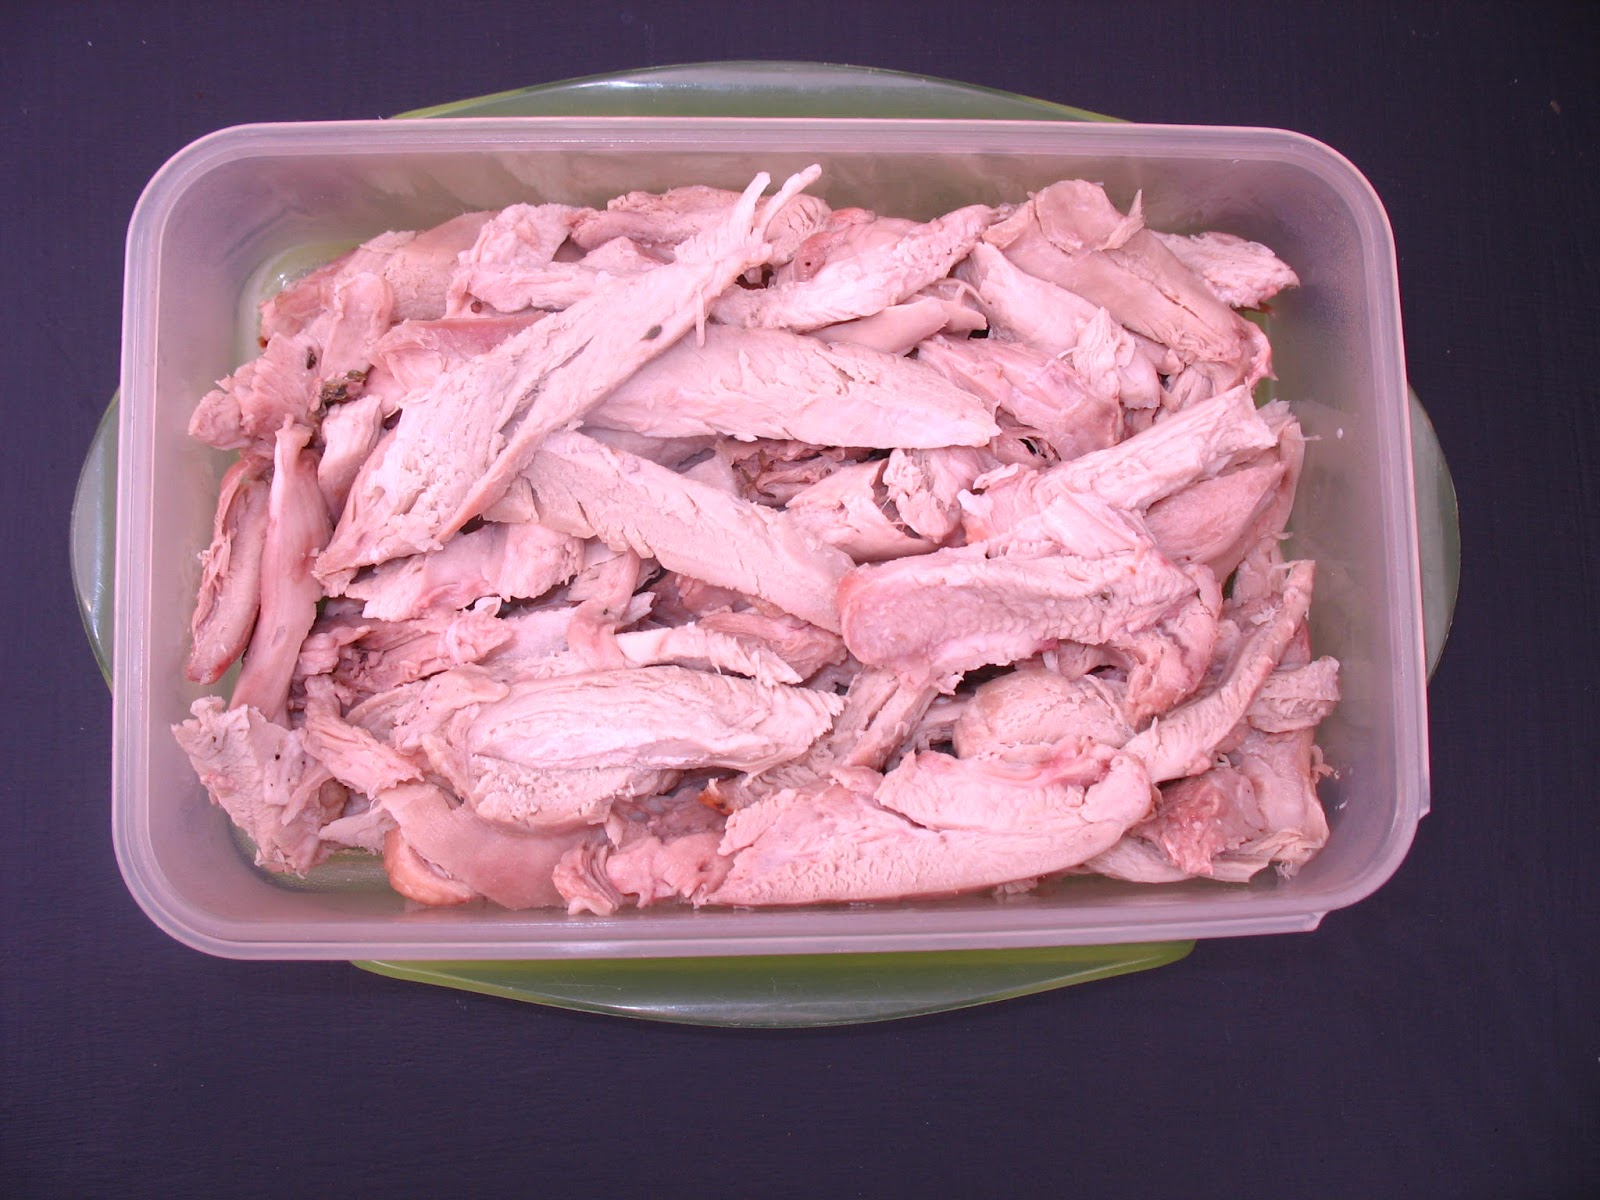 Diaries of a dietitian a substitute for sliced deli meats once the skin and bones were removed i estimate based on information from various turkey sites i had about 612 g of cooked turkey publicscrutiny Image collections